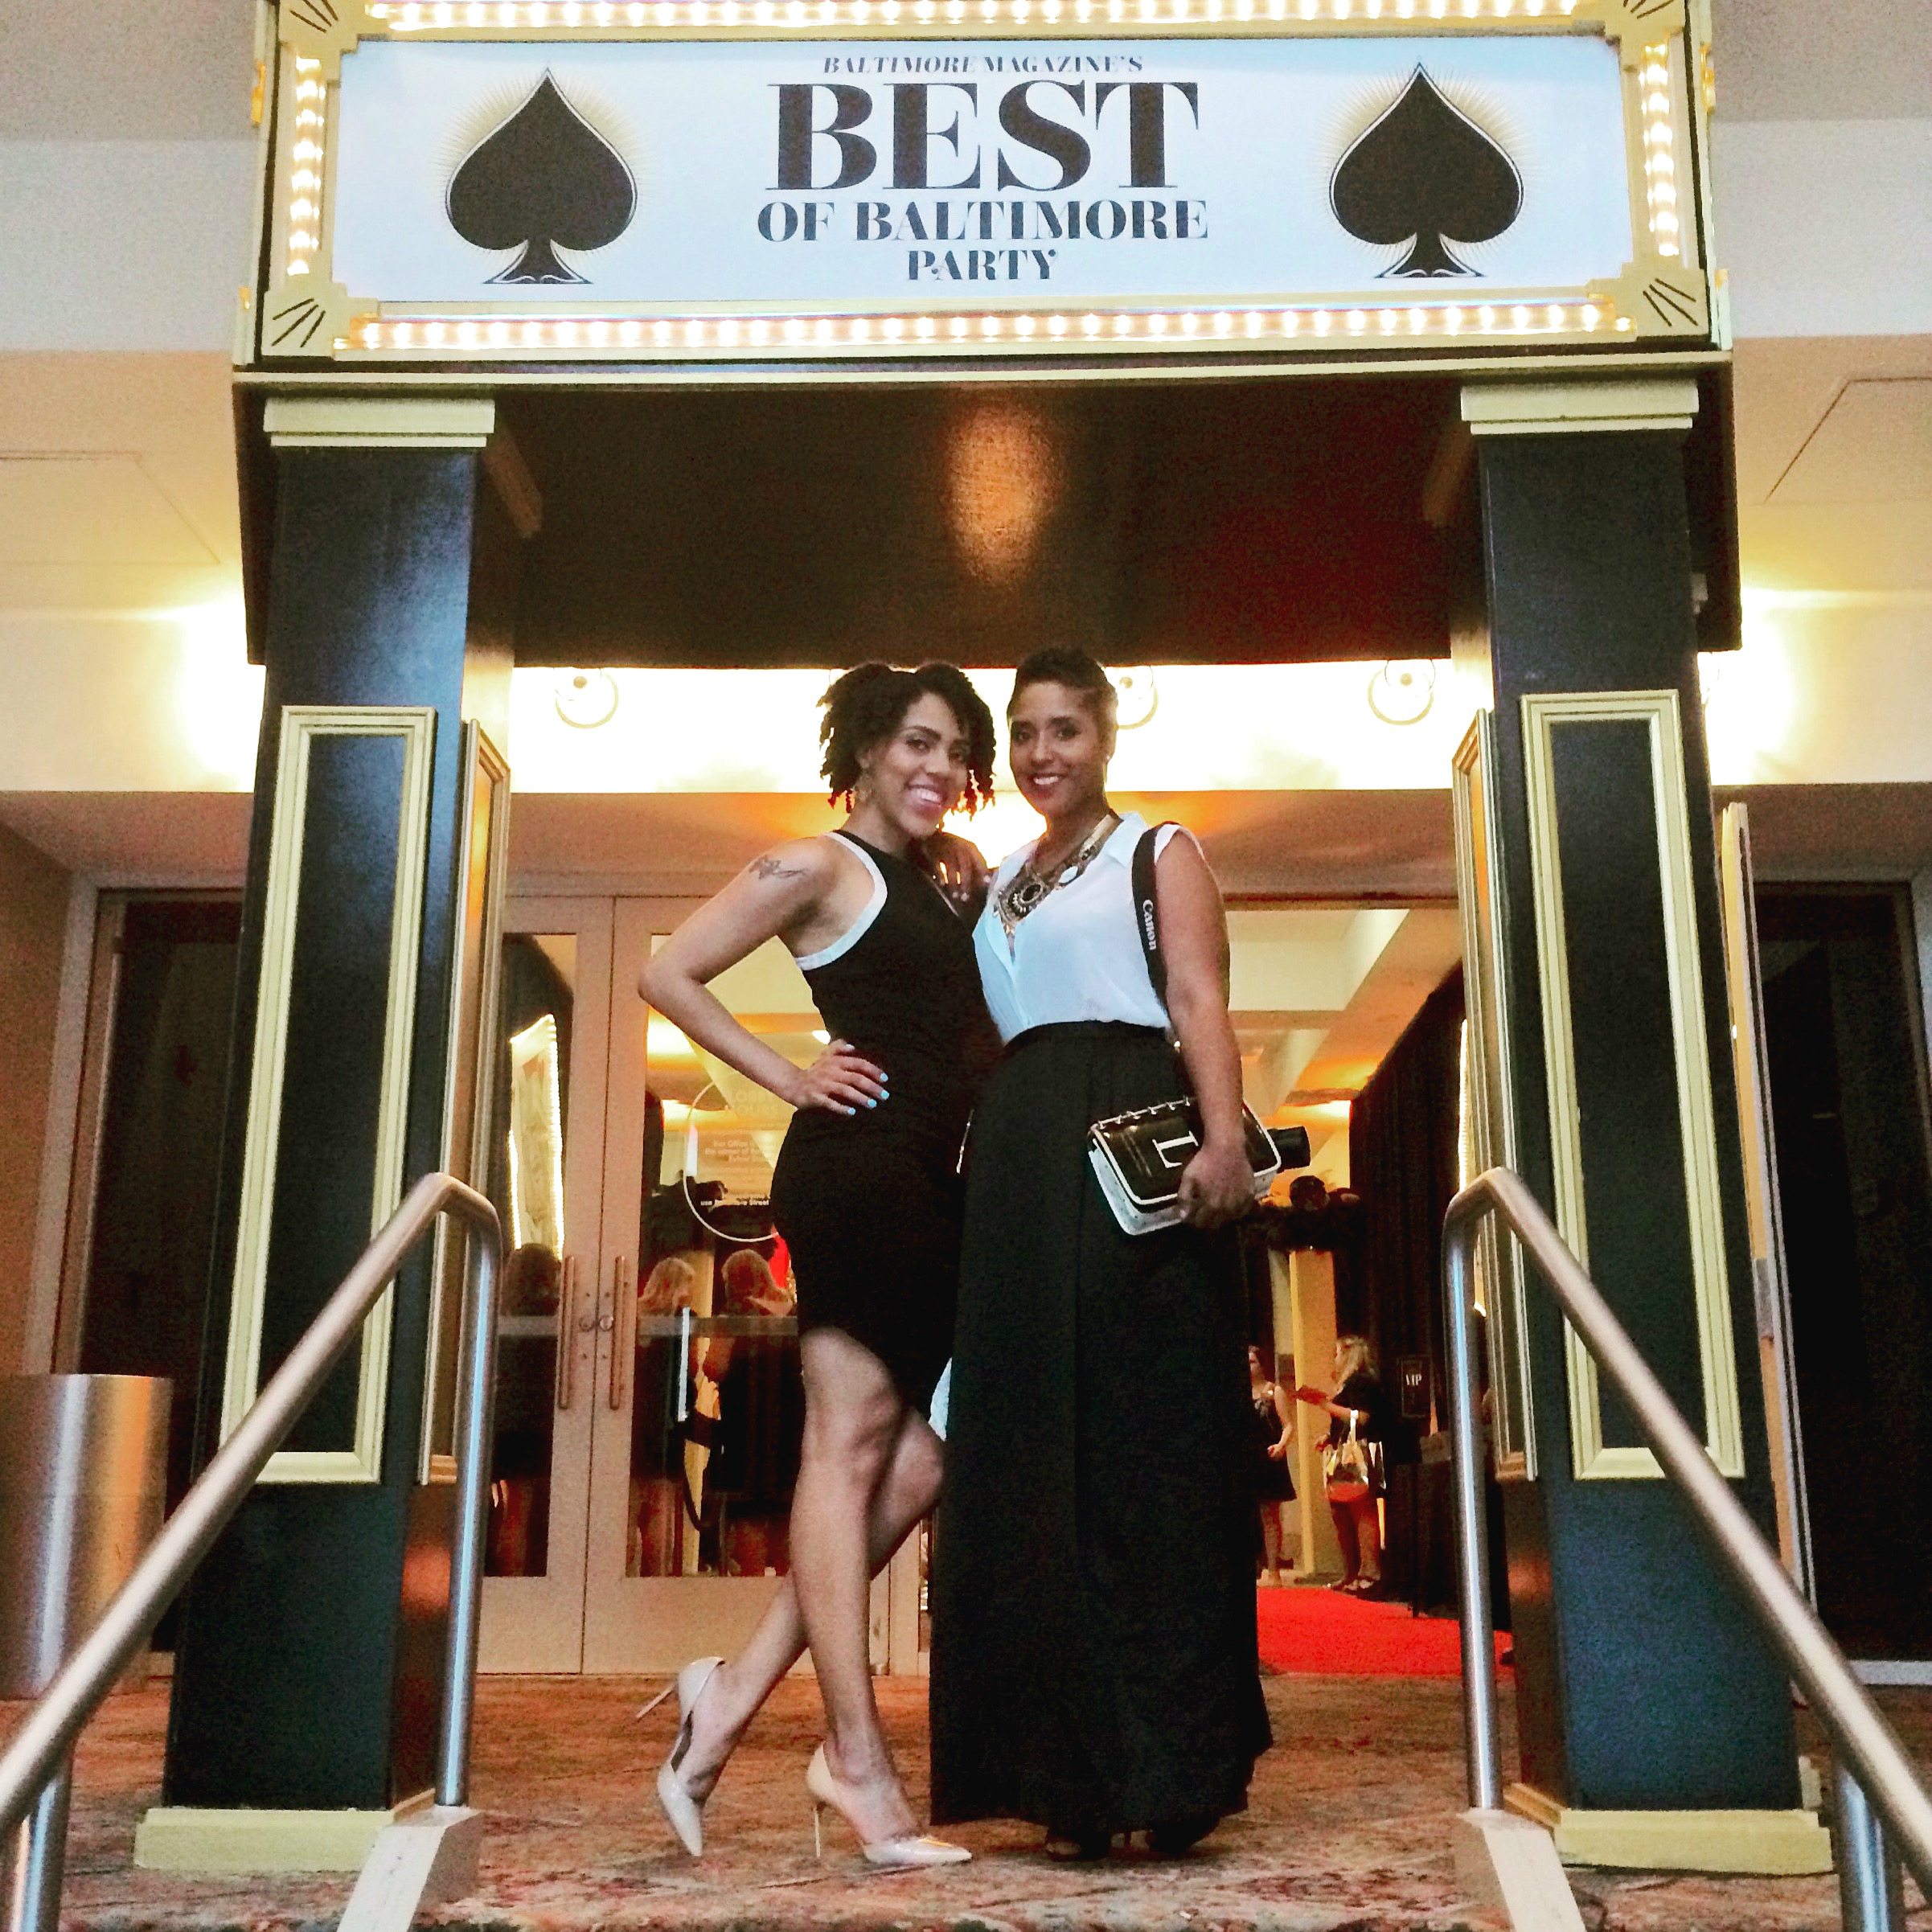 top baltimore bloggers at best of baltimore 2015 - Baltimore Magazine's Best of Baltimore 2015